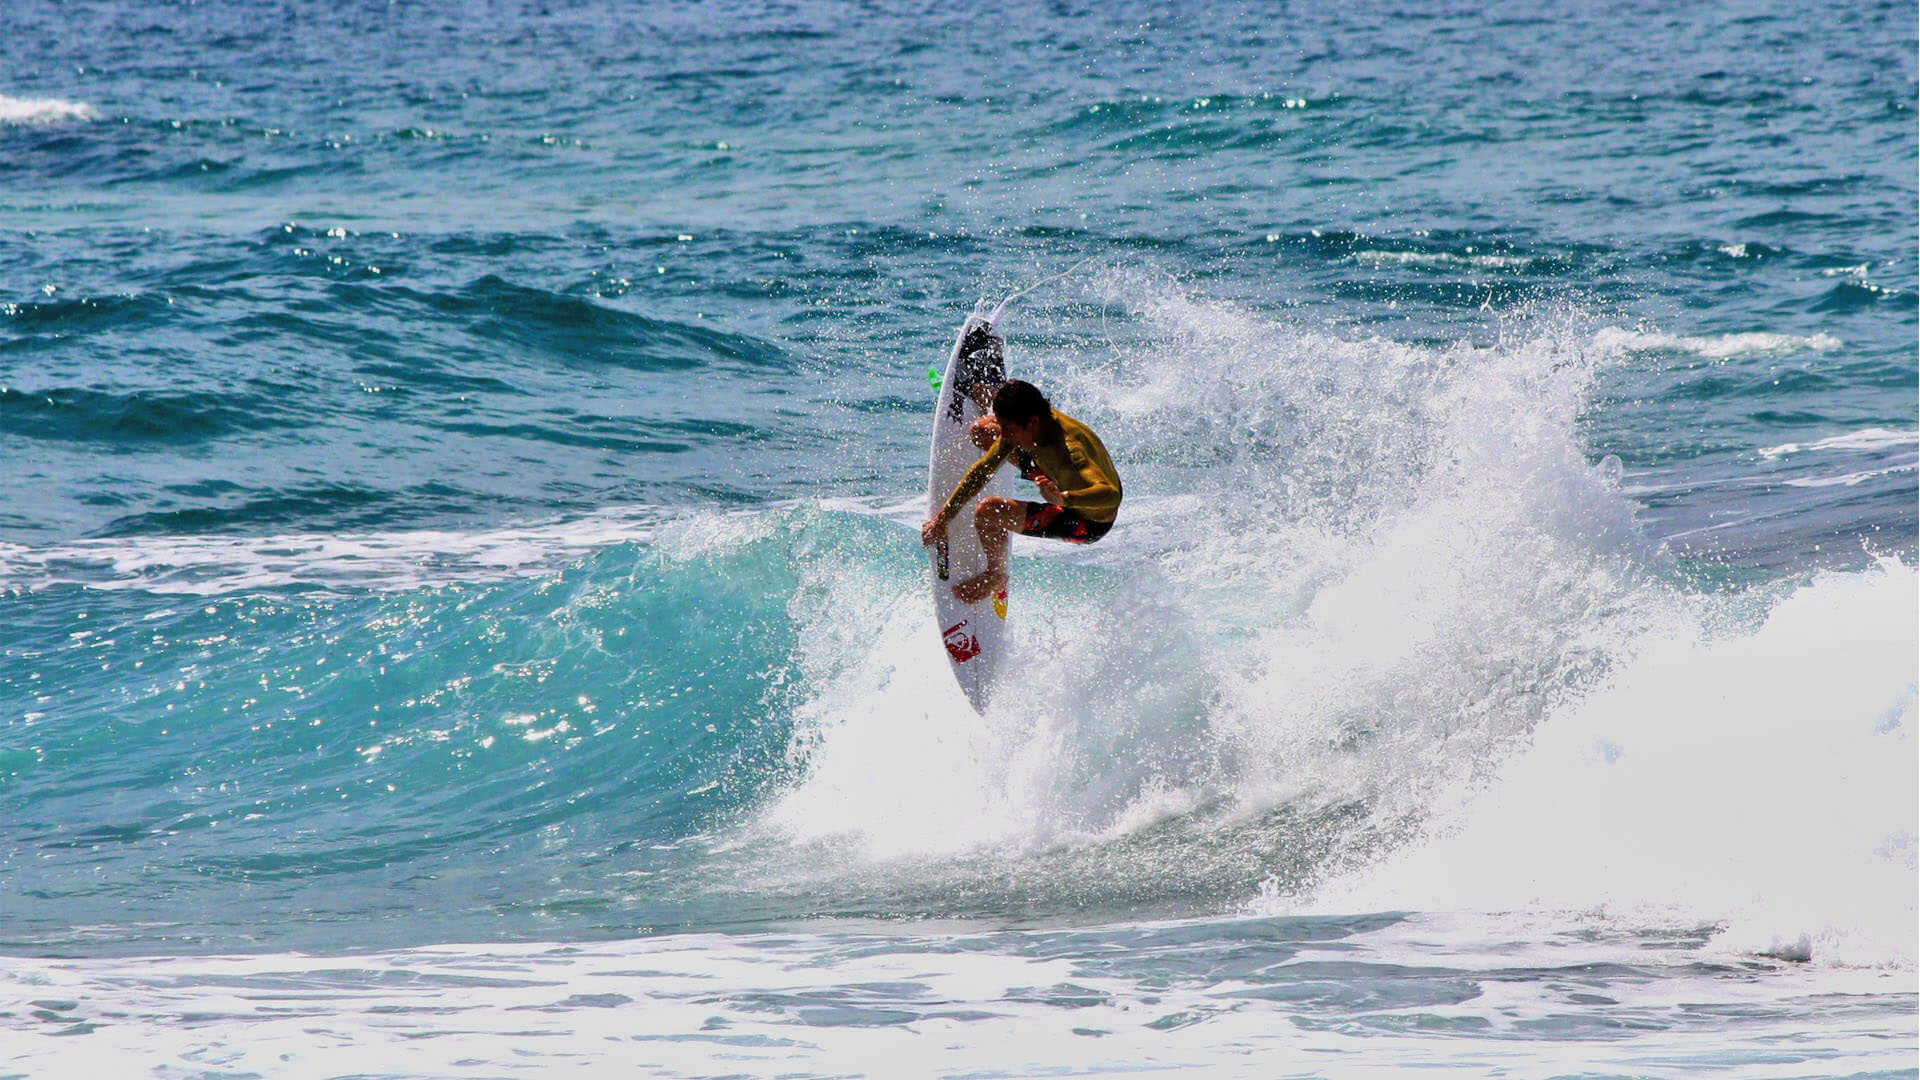 surf-sardegna-marinedda-bay